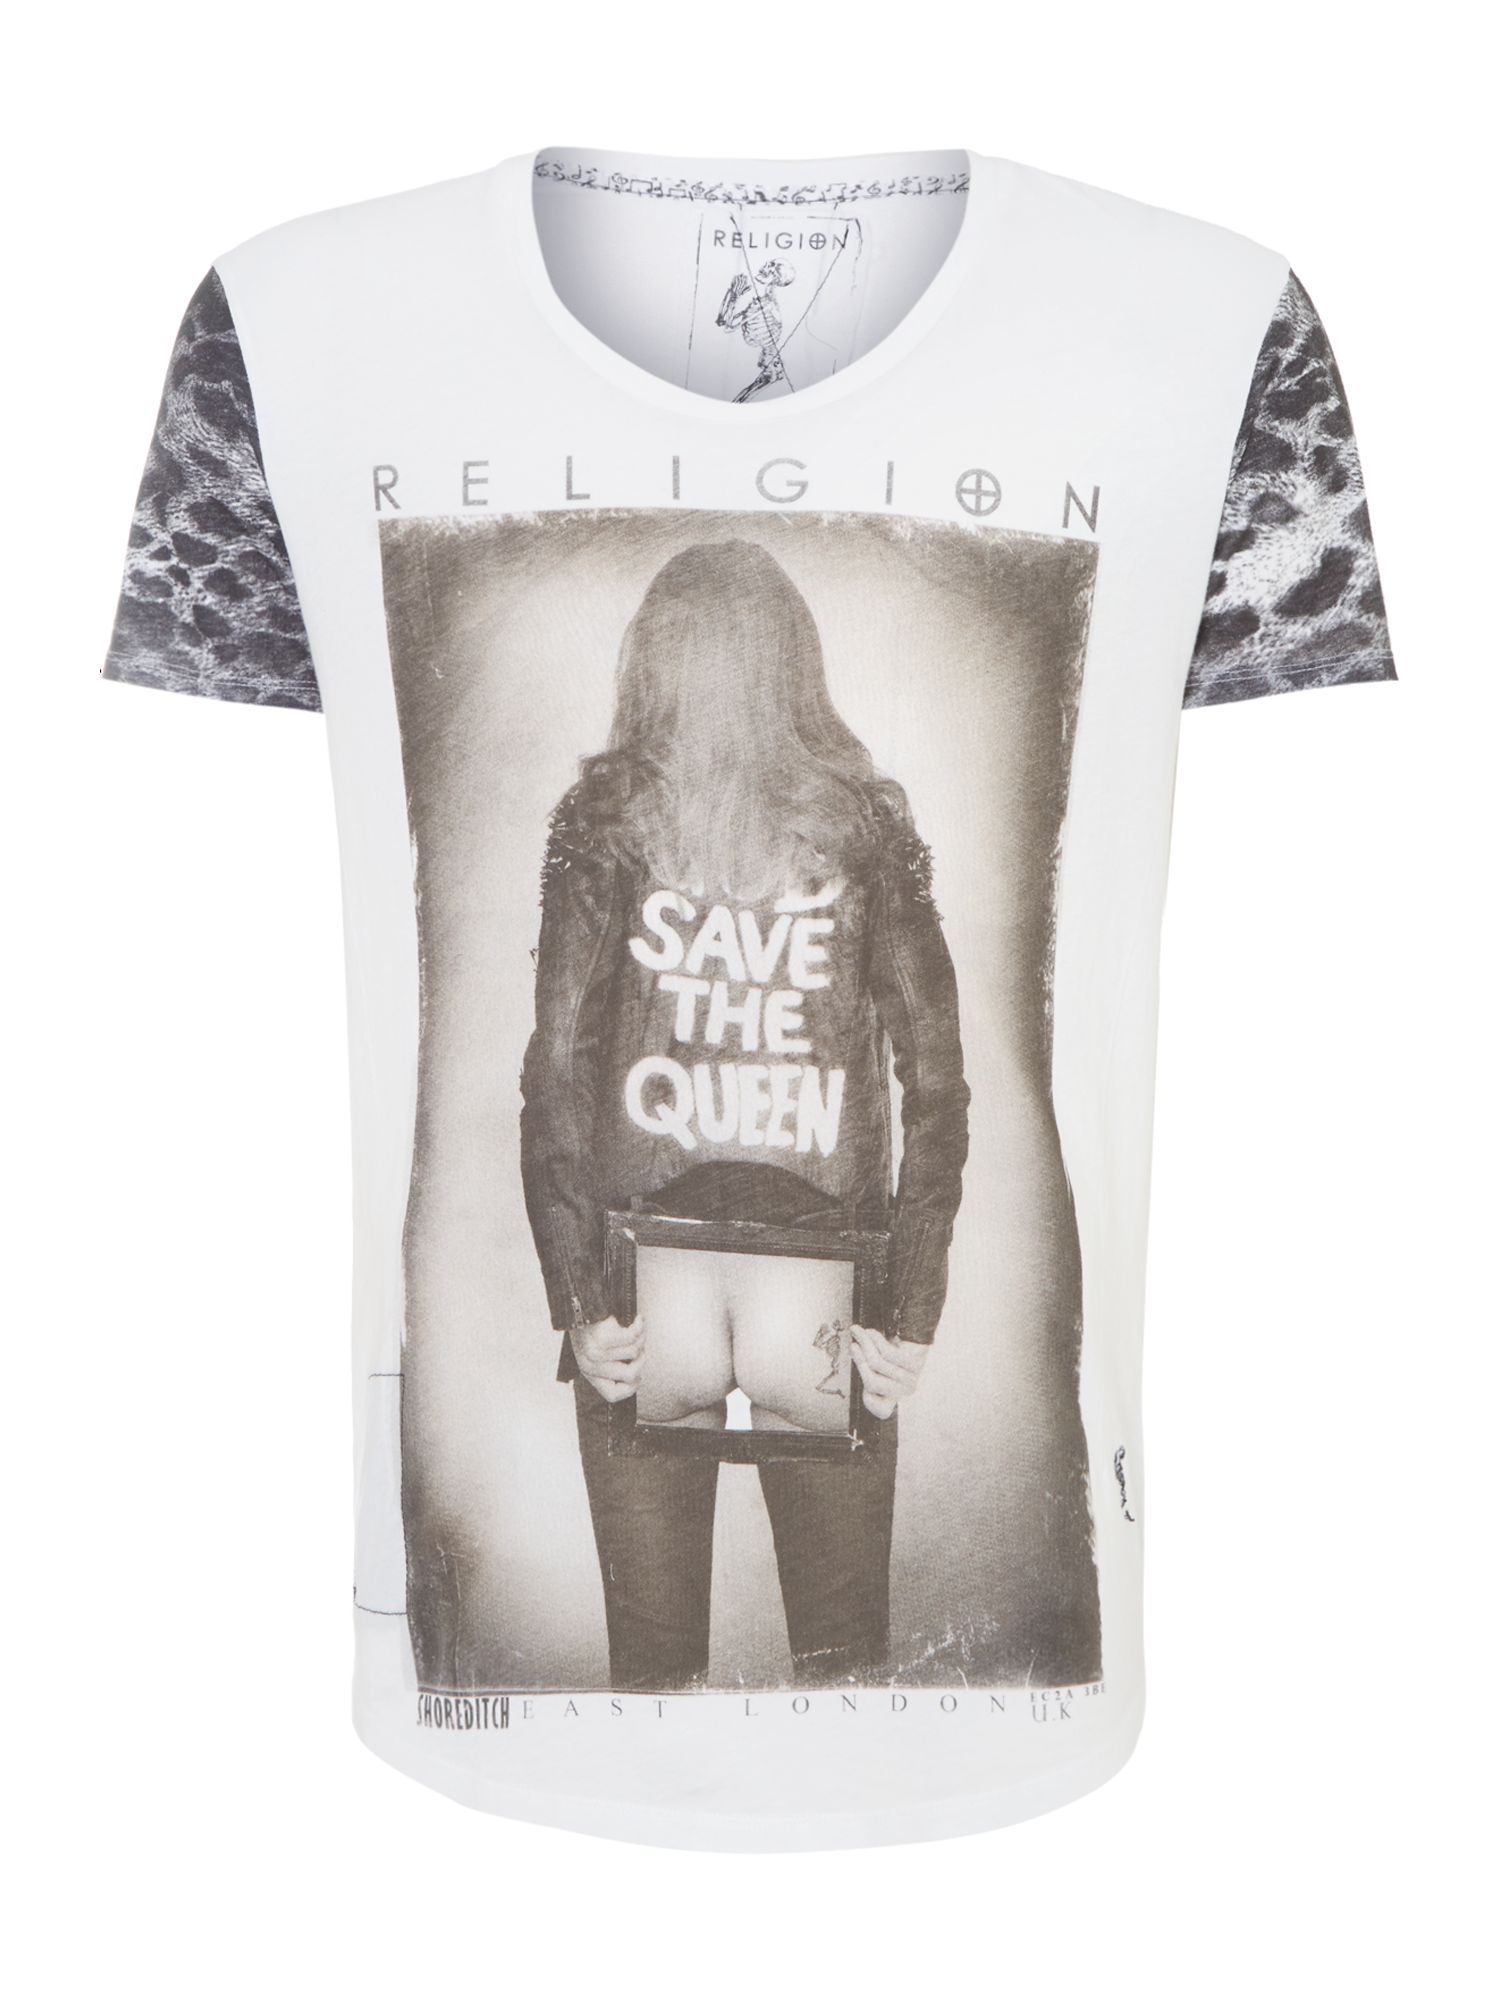 God save the queen t shirt